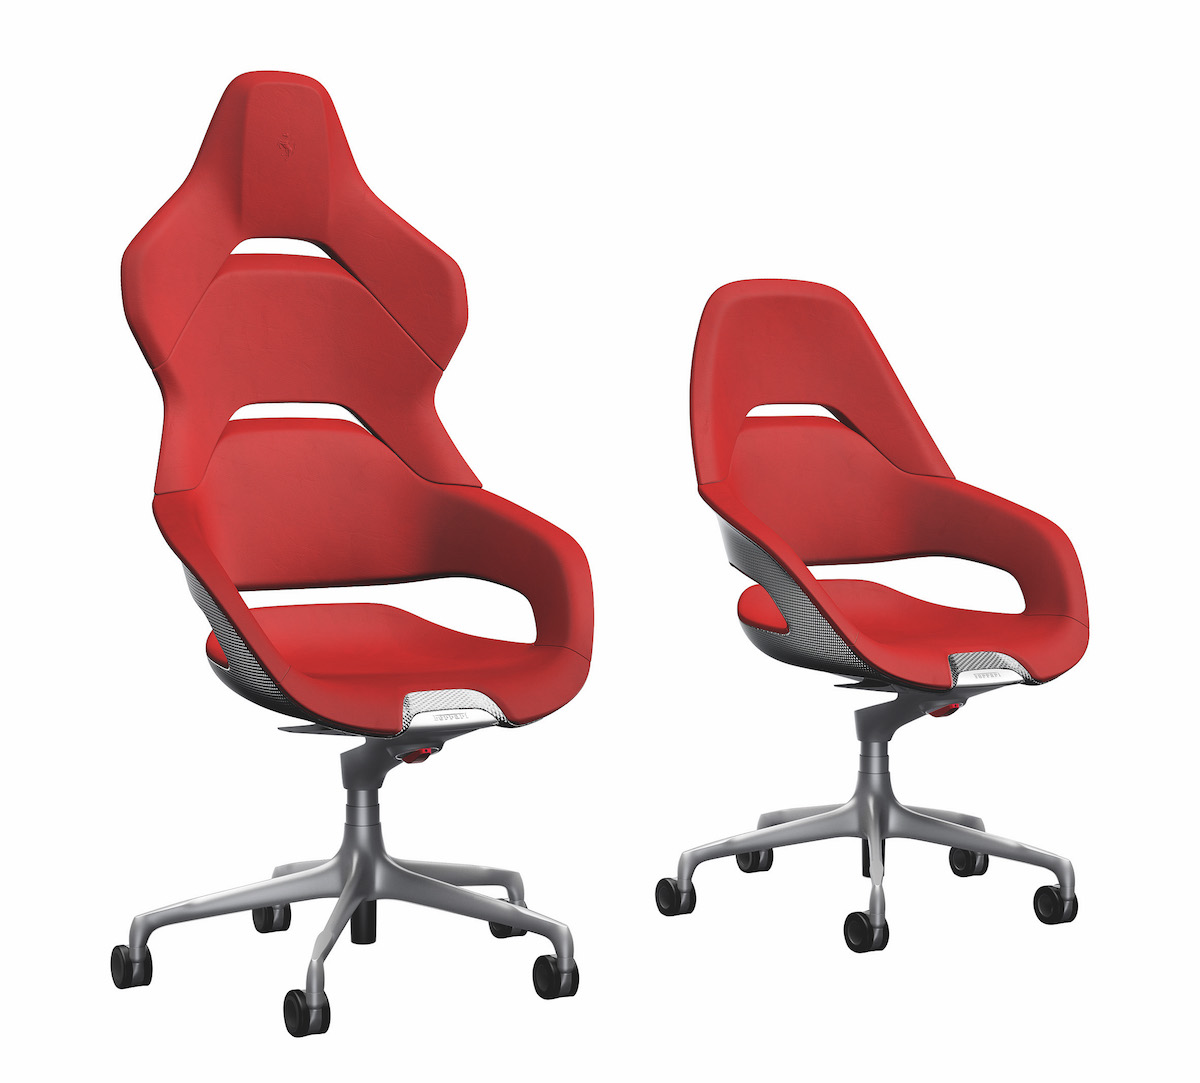 ferrari poltrona-frau new office chair furniture chairs office-chairs racing versions tailor-made colours seats